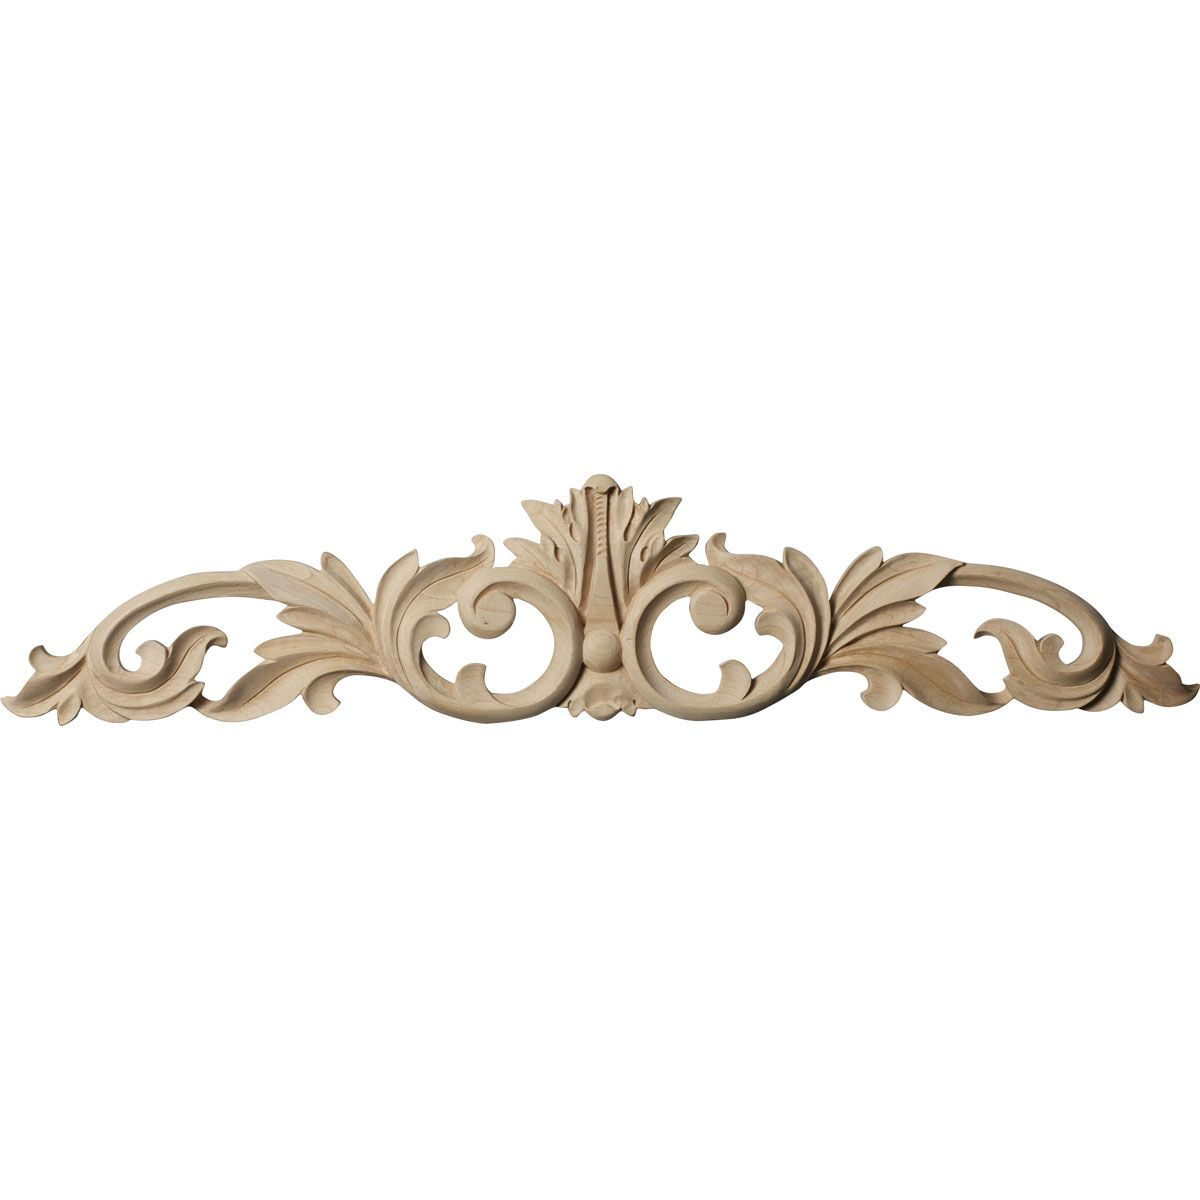 24 3 4 W X 5 1 8 H X 3 4 D Medium Green Leaf Center With Scrolls For Unfinished Dresser To Fancy It Up A Bit Wood Appliques Moldings And Trim Ekena Millwork